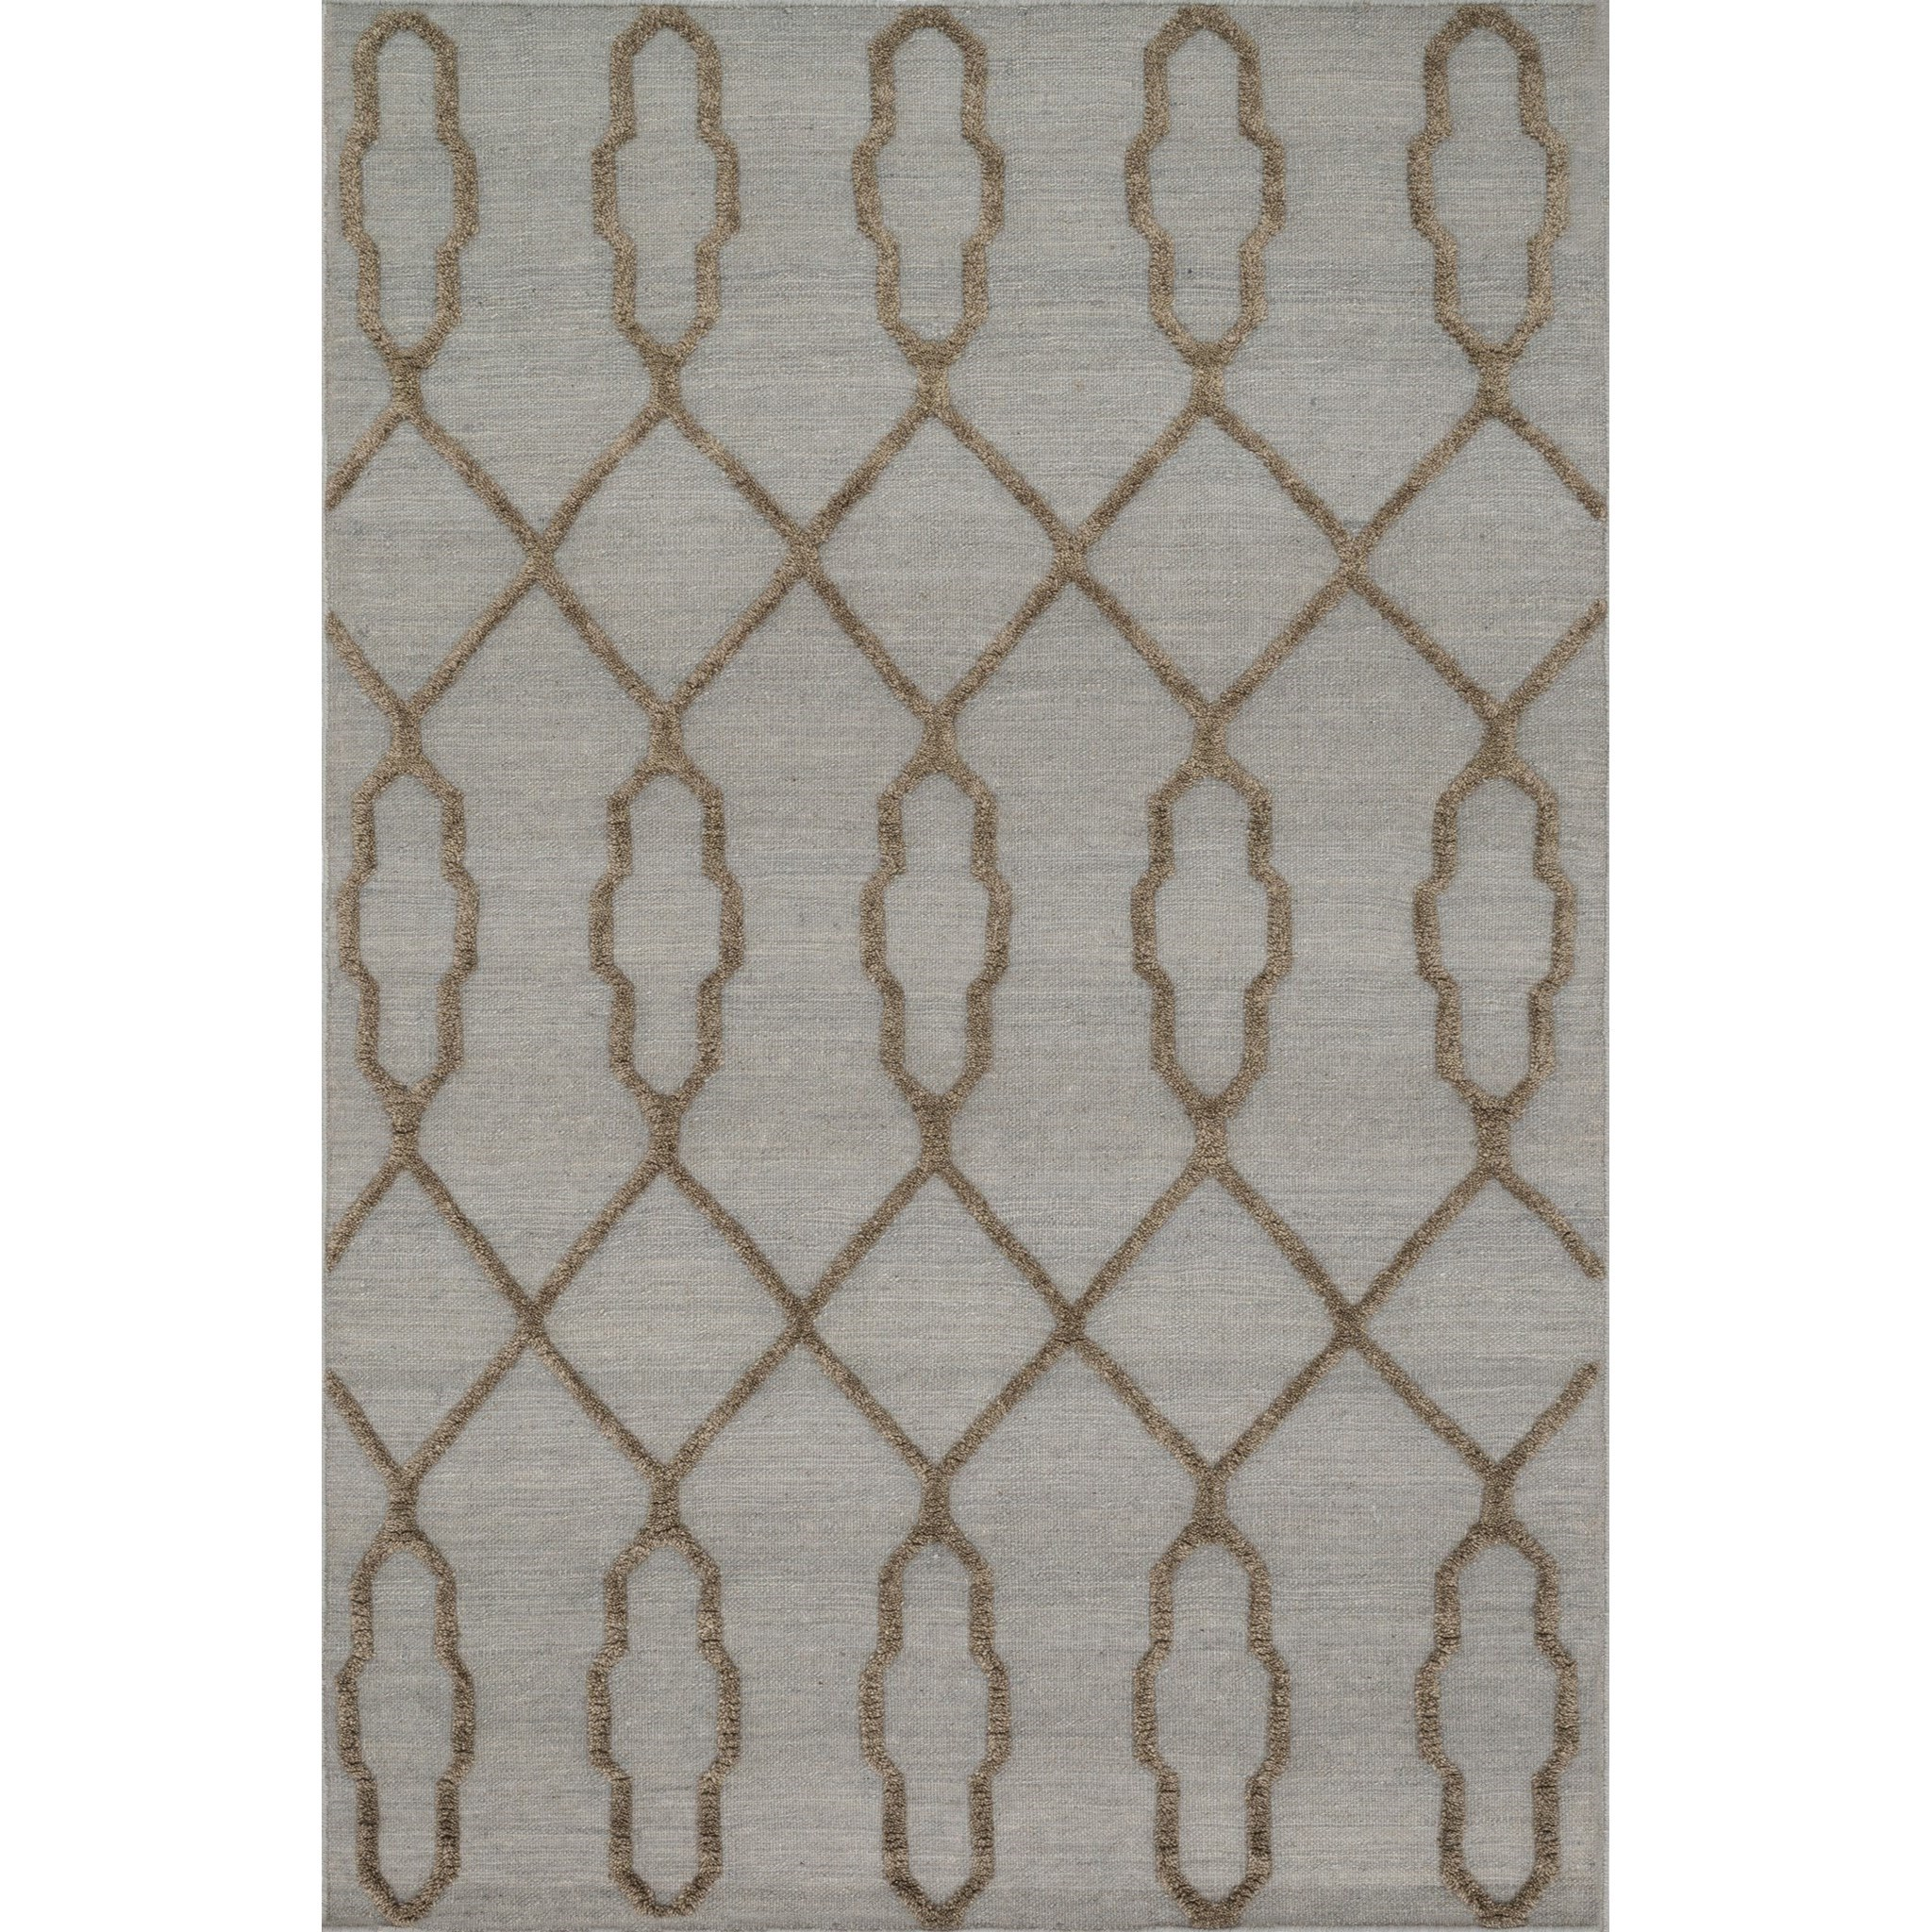 """Adler 7'-9"""" x 9'-9"""" Area Rug by Loloi Rugs at Sprintz Furniture"""